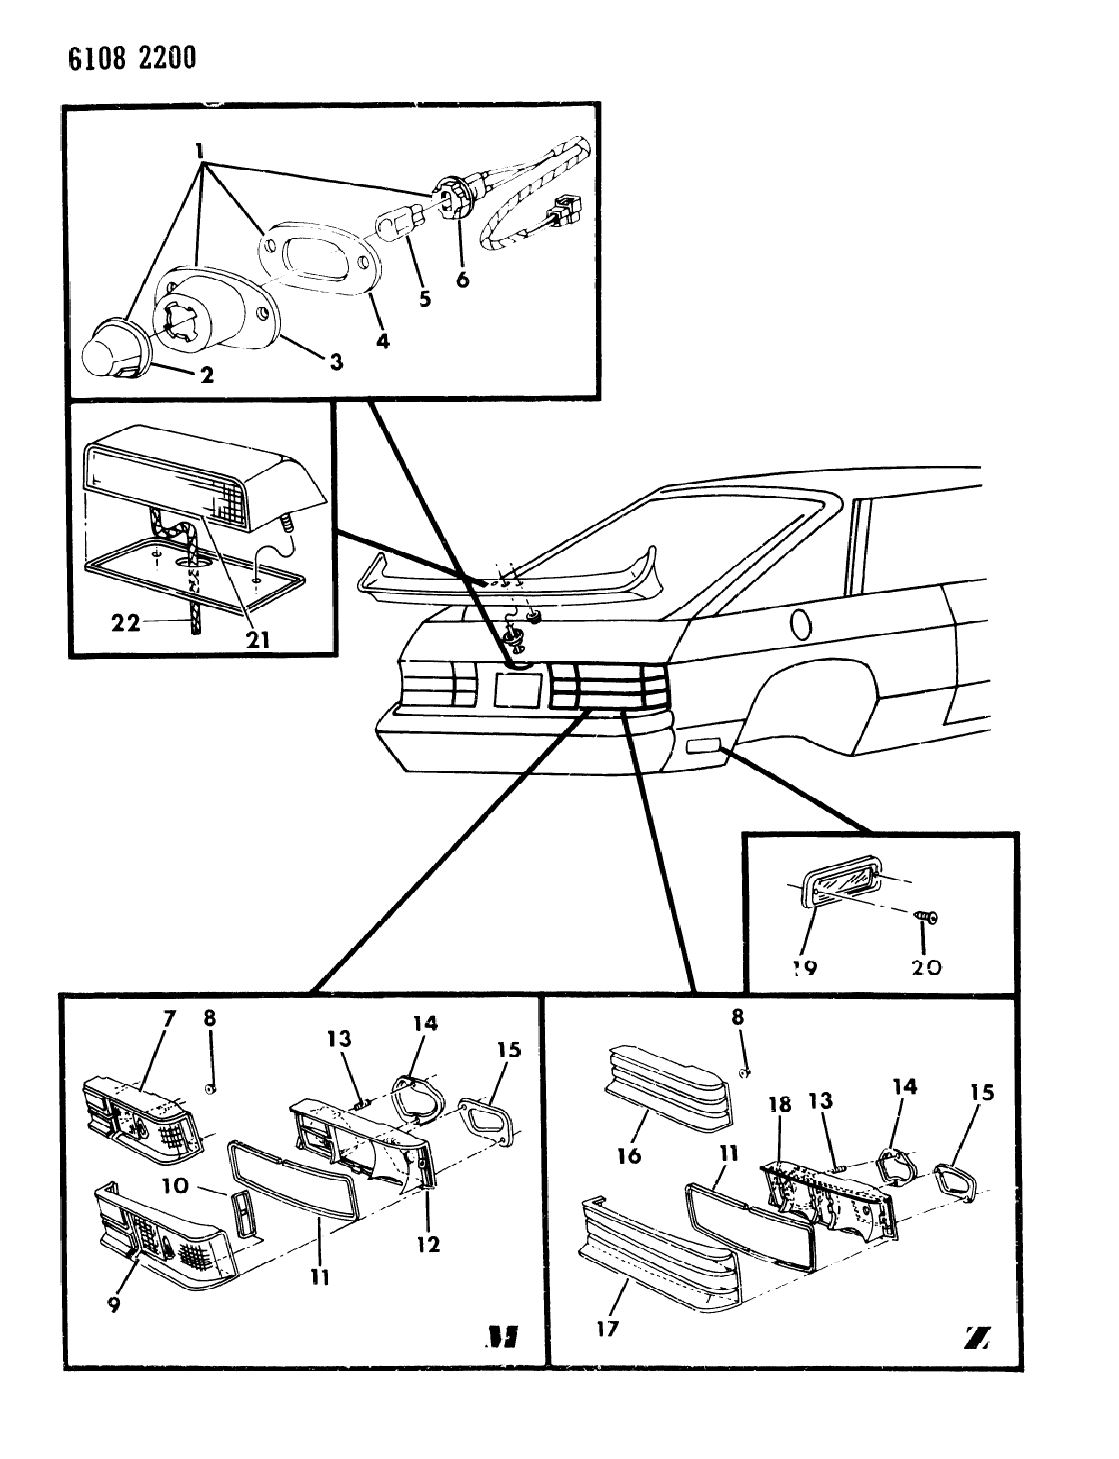 1986 dodge charger lamps & wiring - rear - thumbnail 1